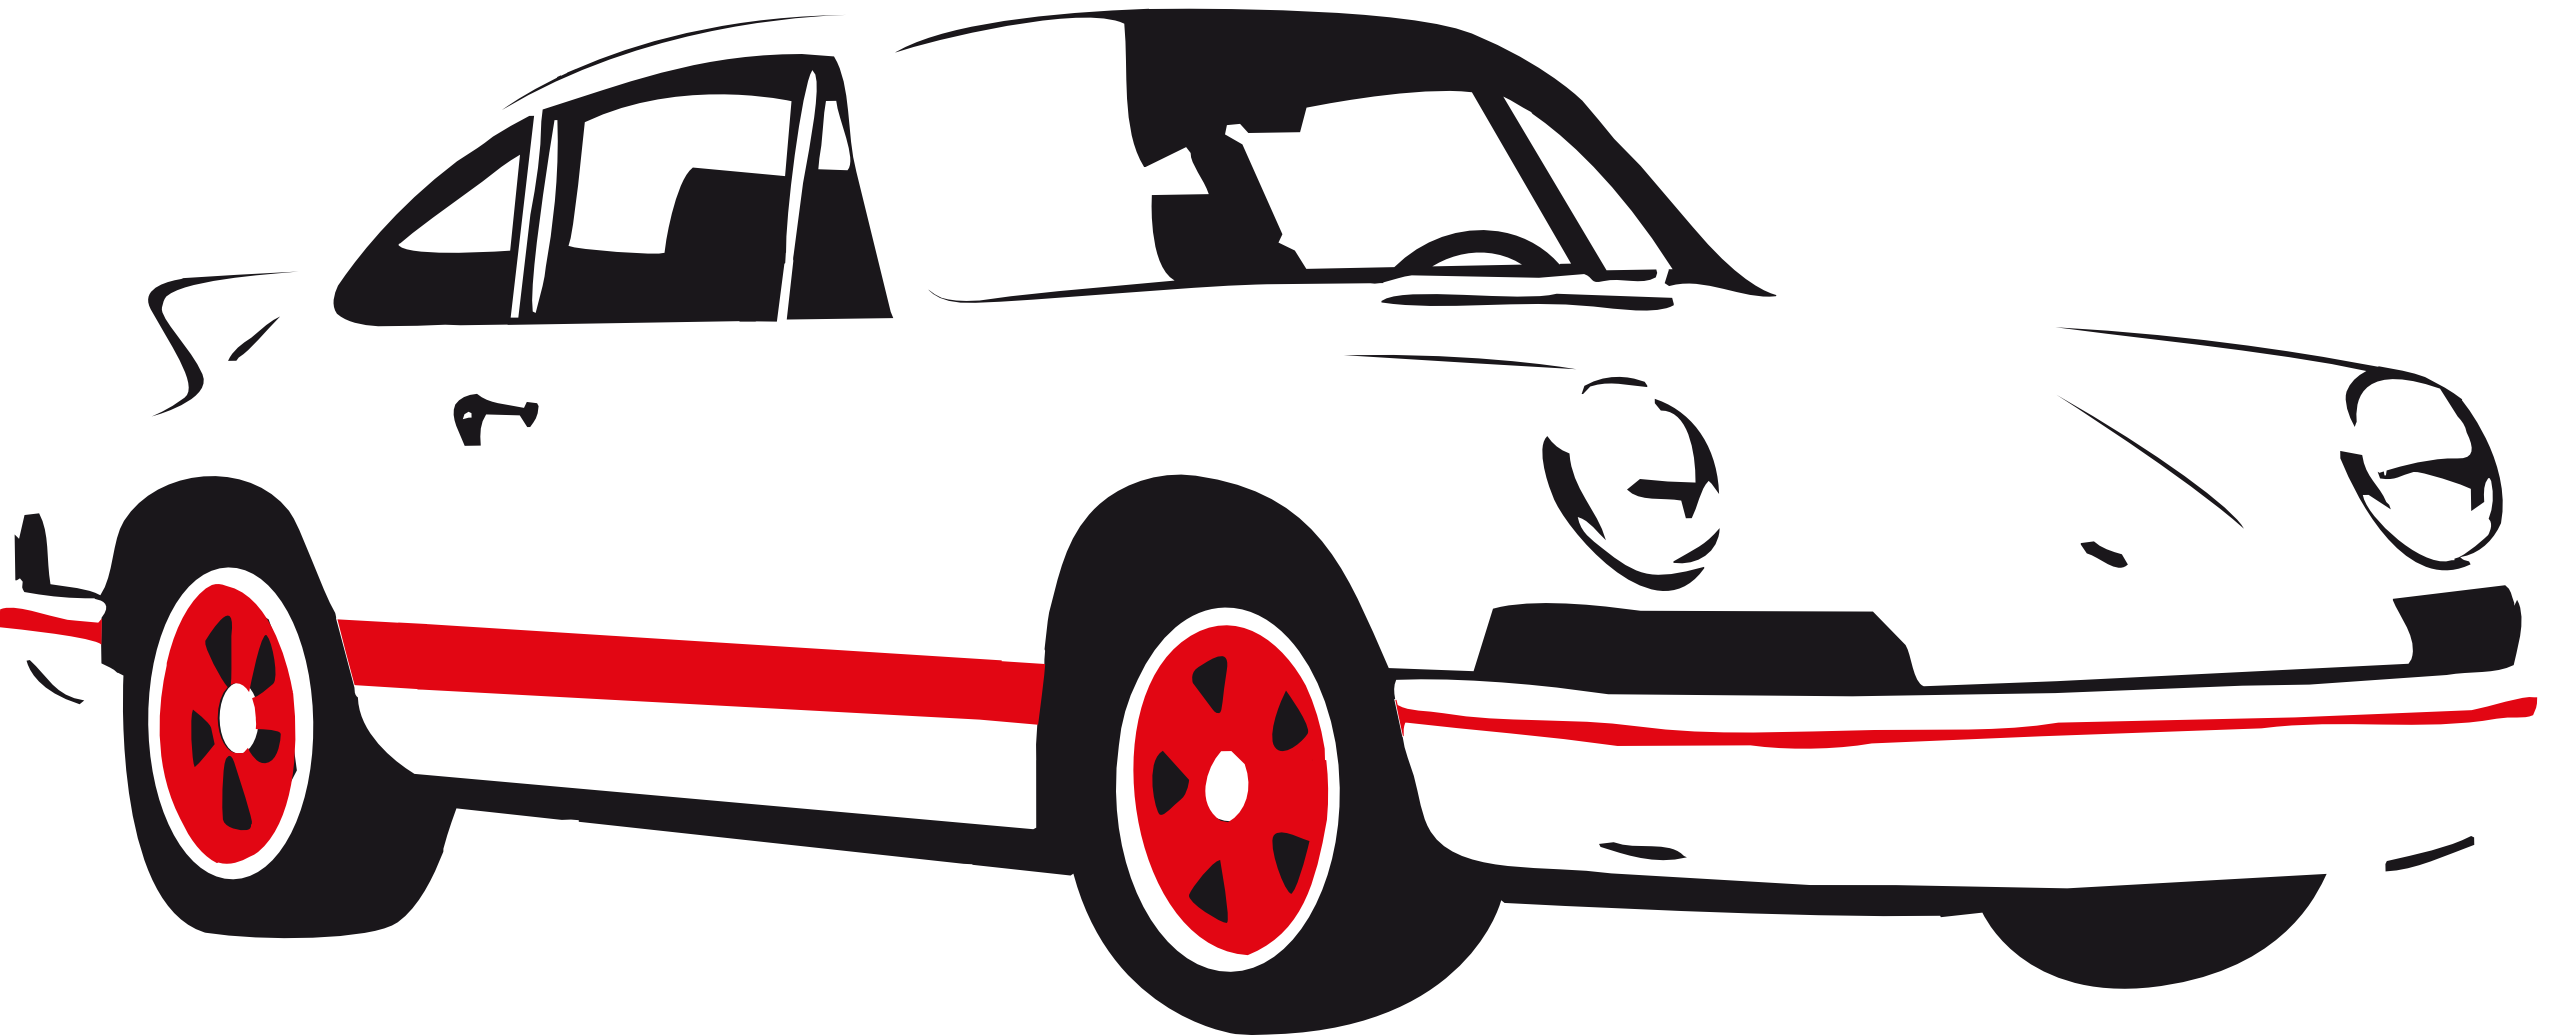 Free race car clipart images png library stock Car Front Silhouette at GetDrawings.com | Free for personal use Car ... png library stock